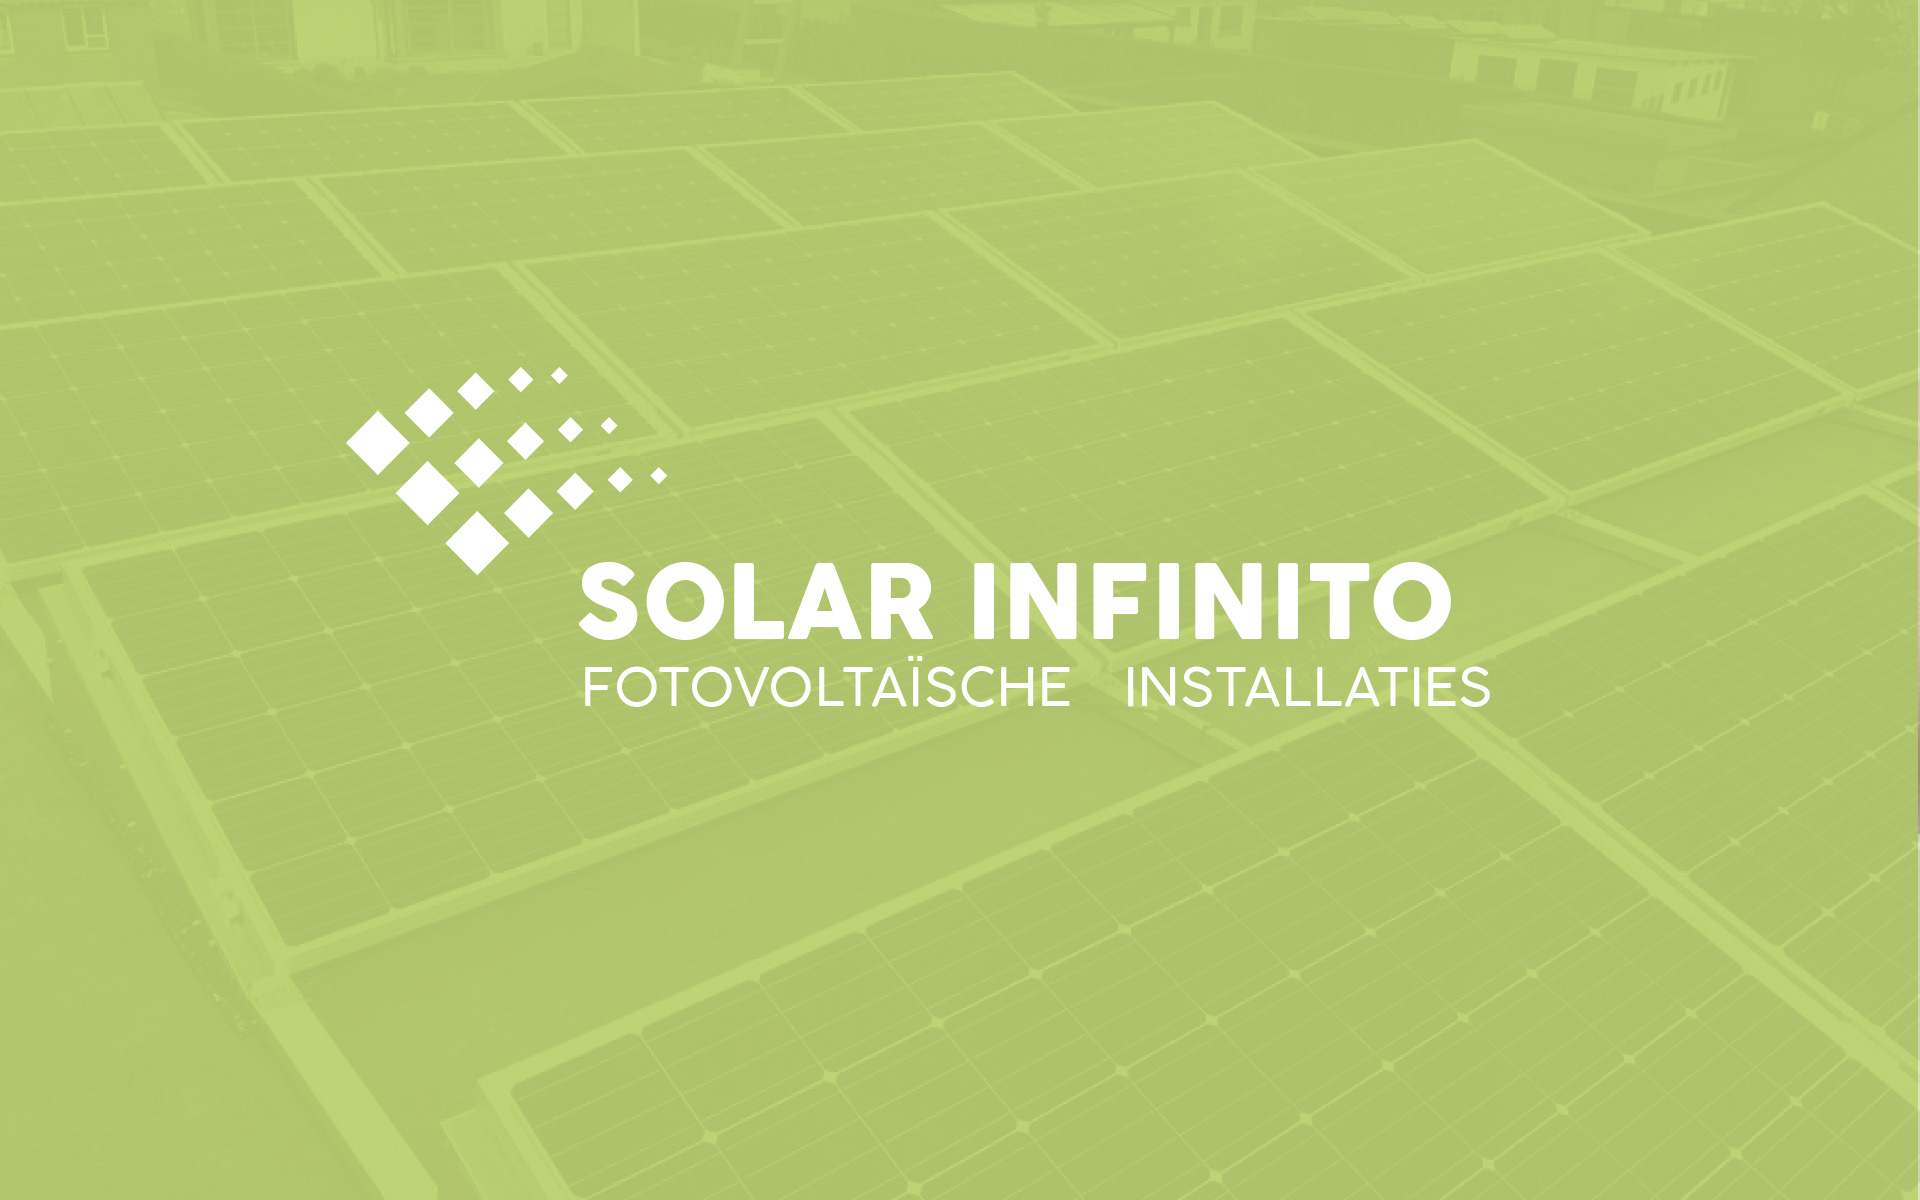 https://sconcept.be/wp-content/uploads/2019/07/solarinfinito-2.jpg